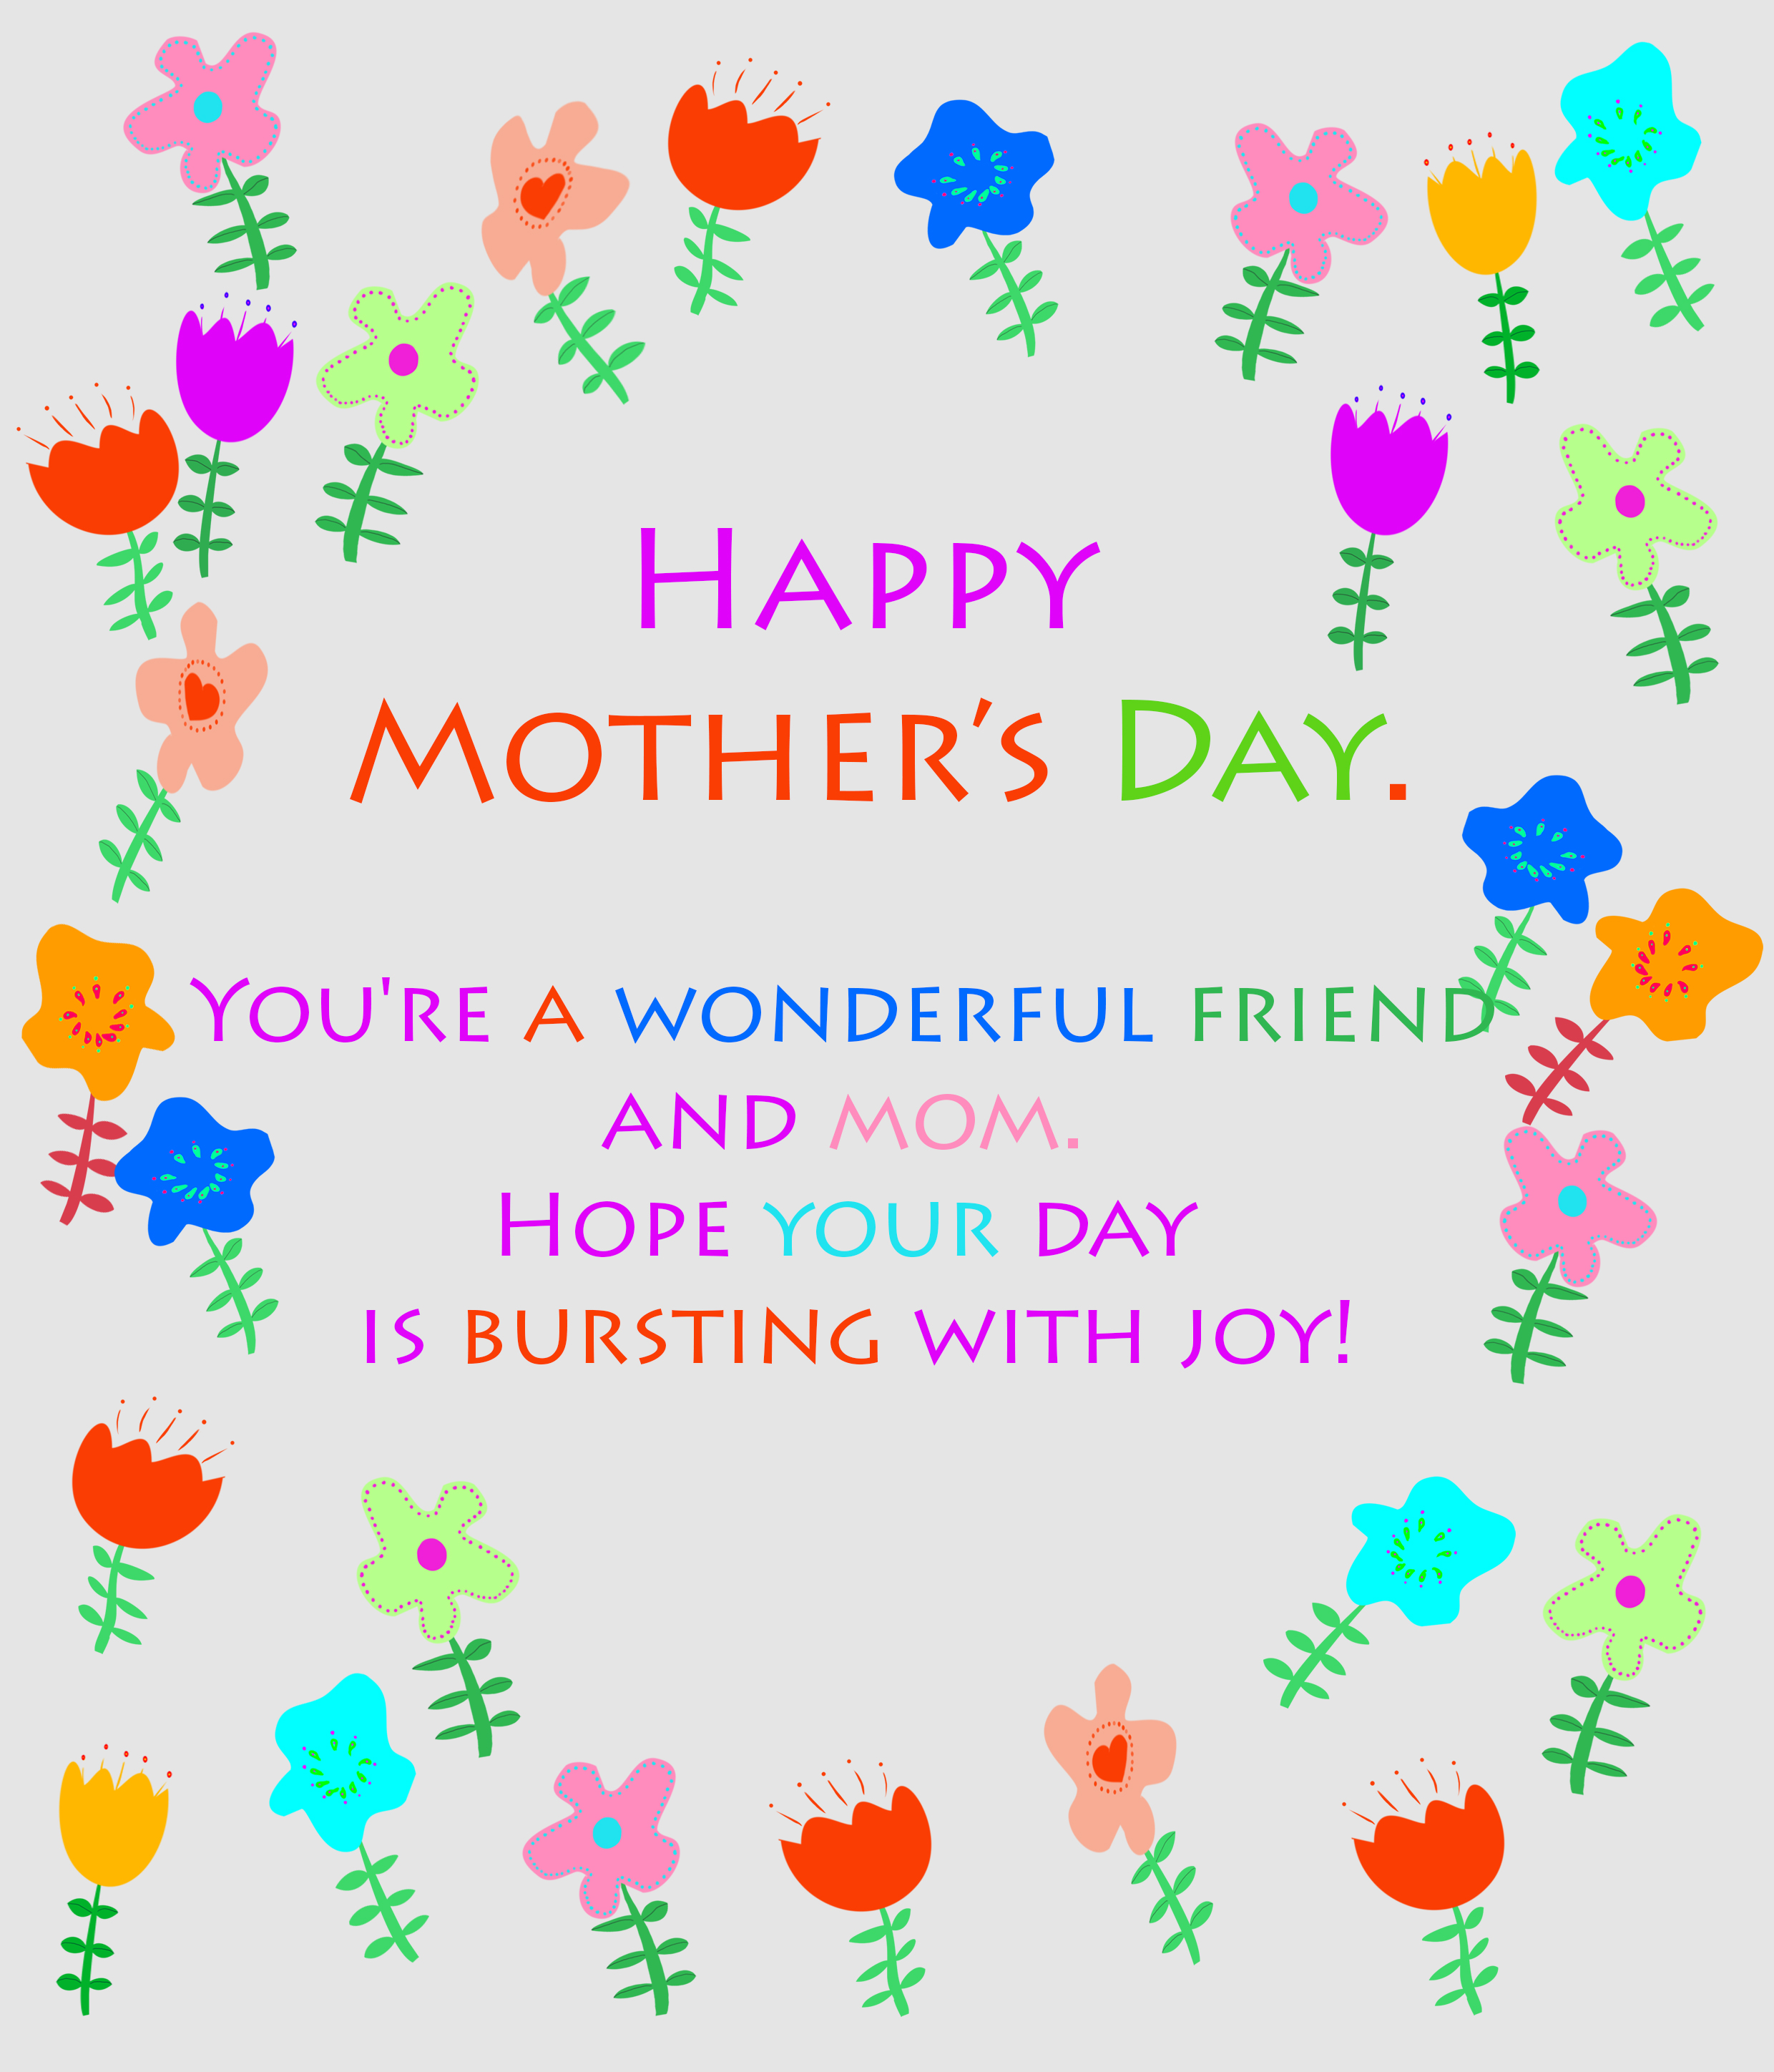 happy mother's day to my friend